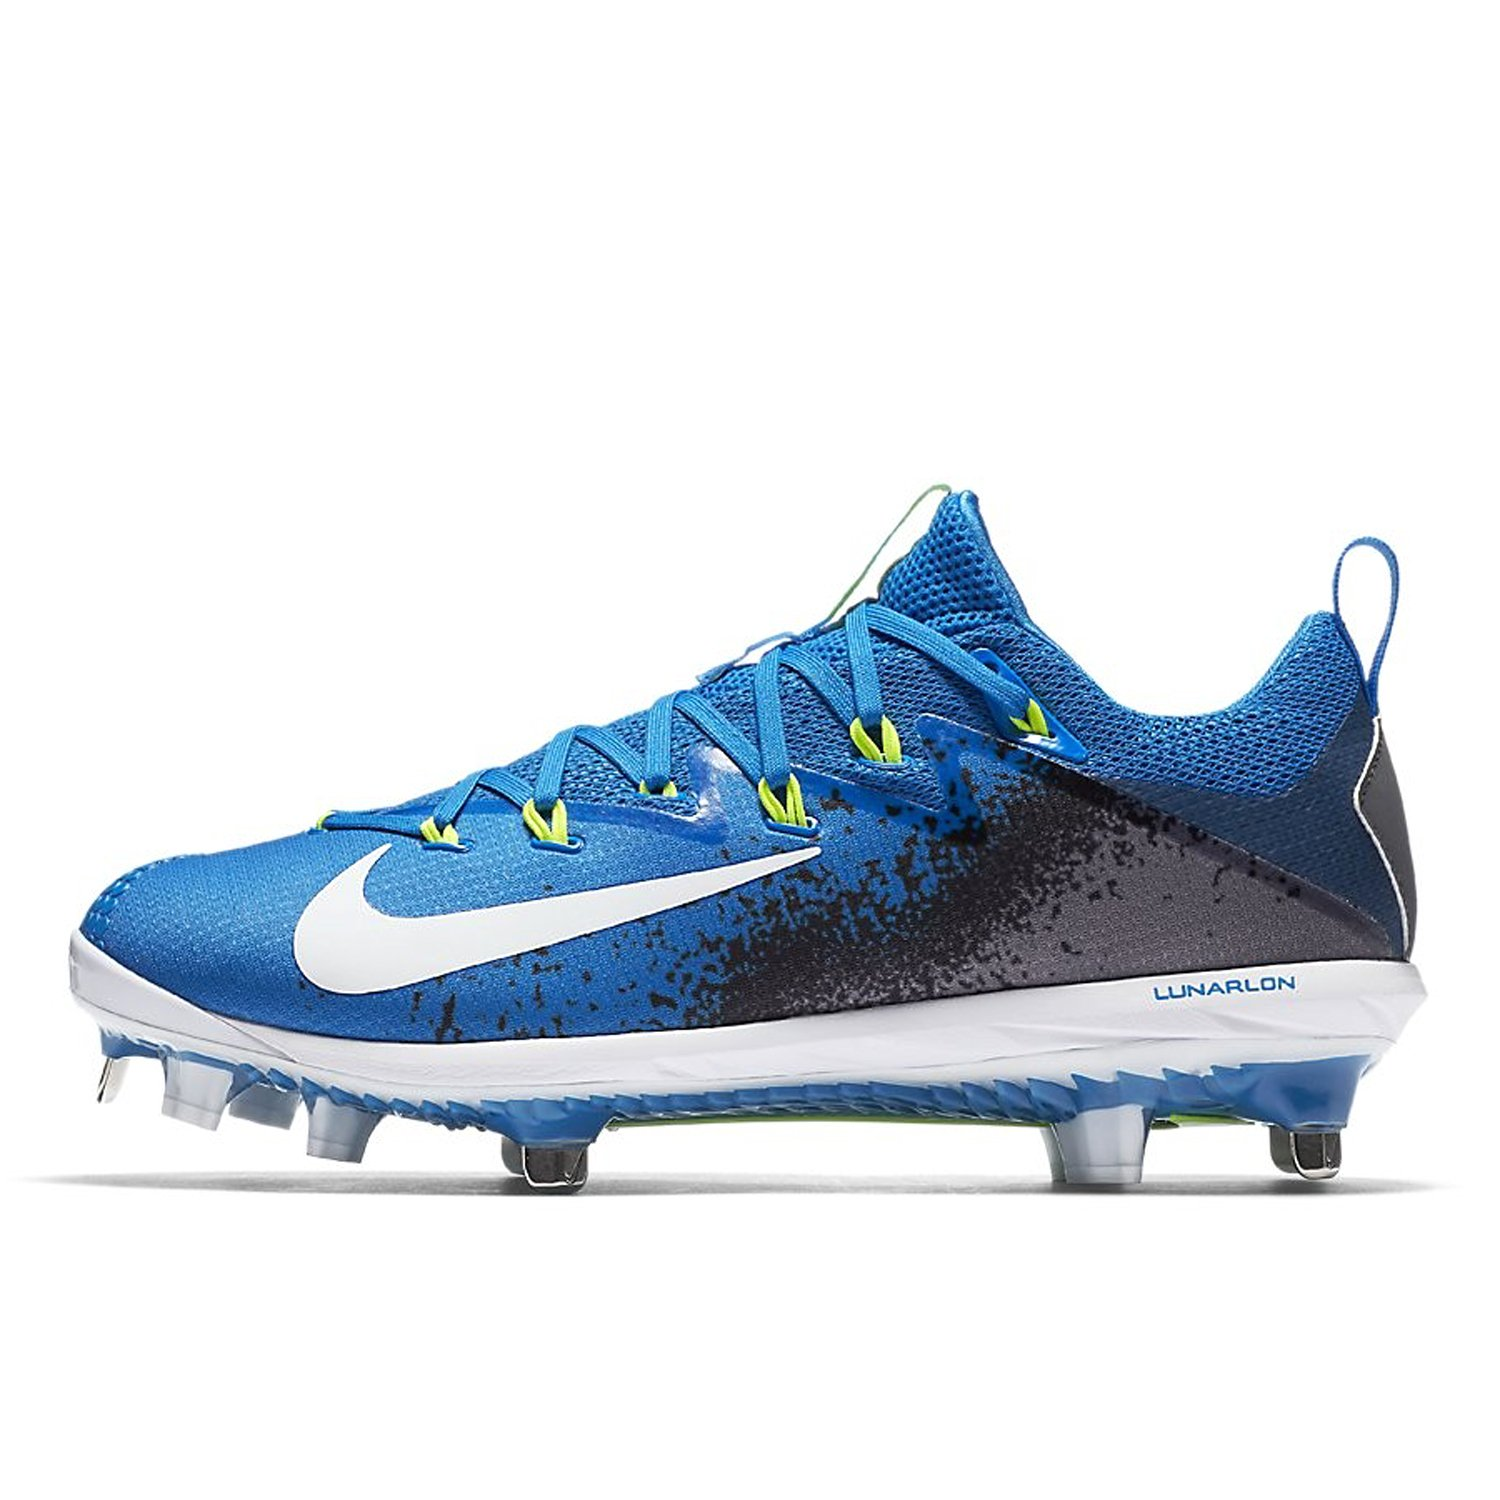 NIKE Men's Lunar Vapor Ultrafly Elite Baseball Cleat B073NDCBYV 9 D(M) US|Photo Blue/Cool Grey/Volt/White